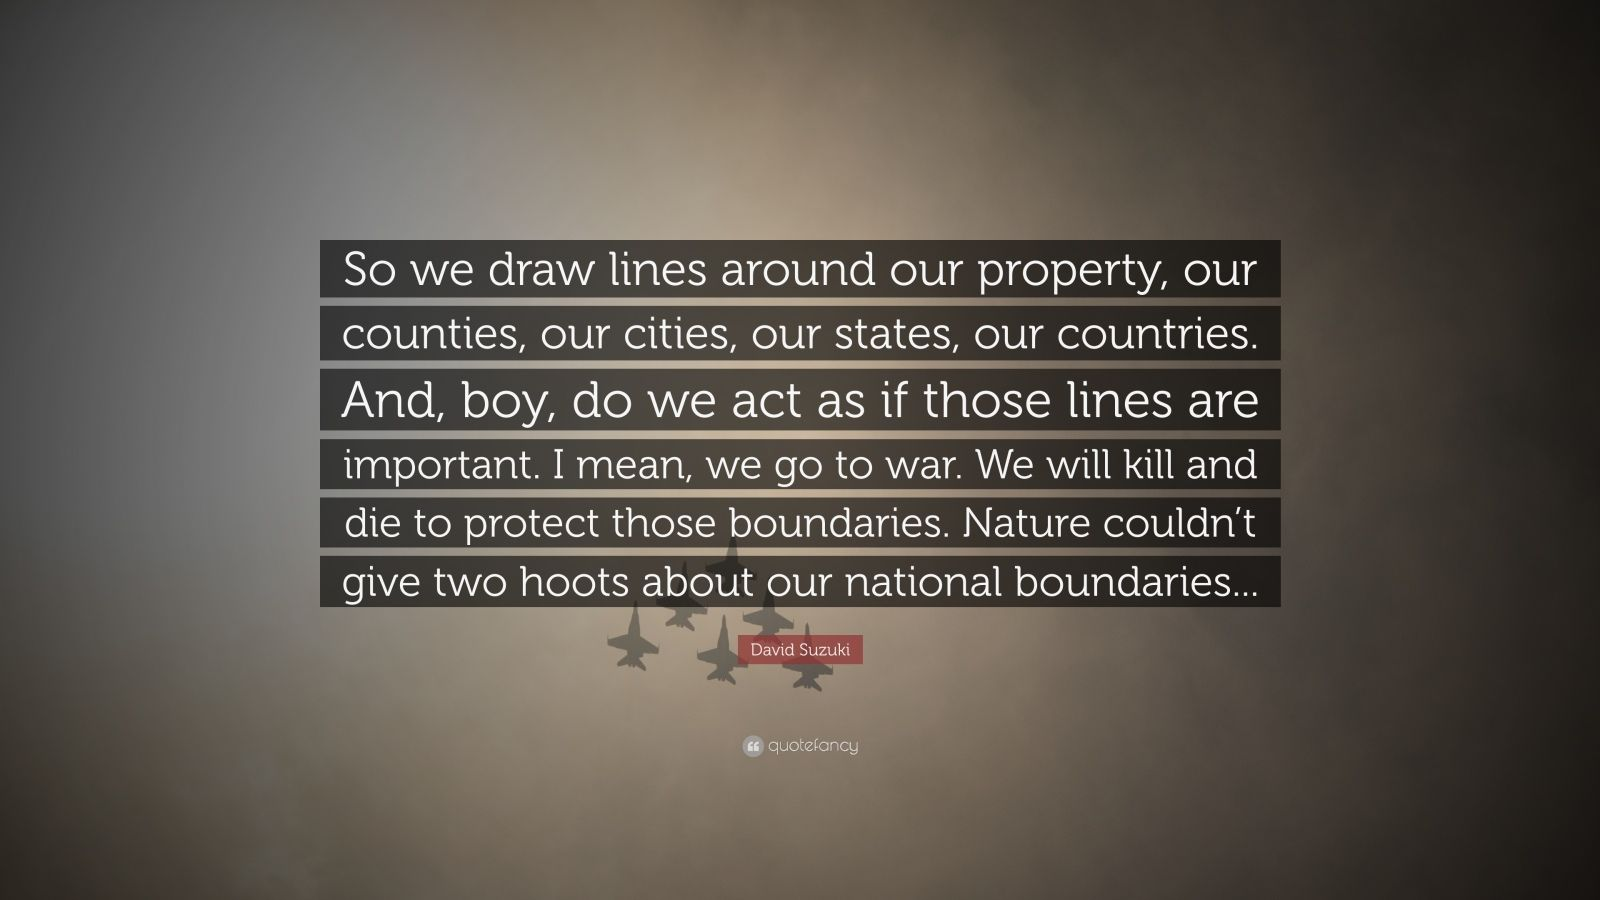 """David Suzuki Quote: """"So we draw lines around our property, our counties, our cities, our states, our countries. And, boy, do we act as if those lines are important. I mean, we go to war. We will kill and die to protect those boundaries. Nature couldn't give two hoots about our national boundaries..."""""""